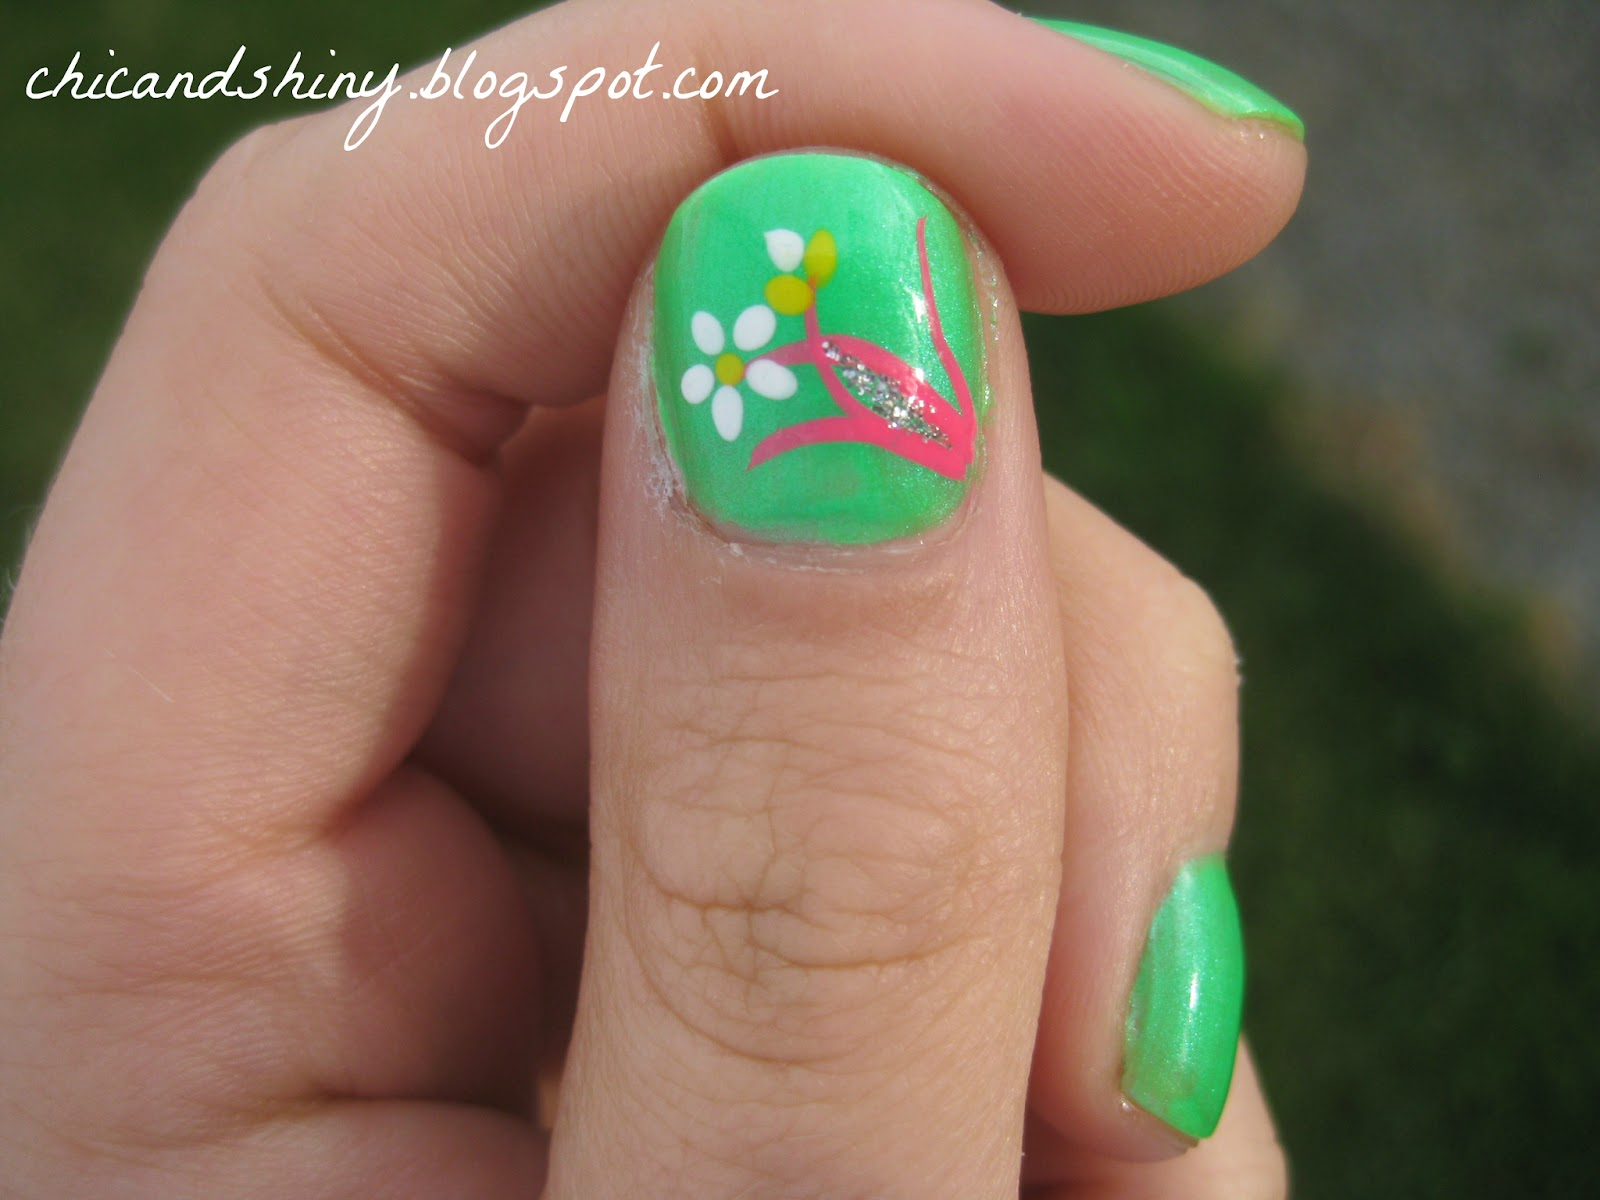 The Glamorous Cute simple nail art designs Pics